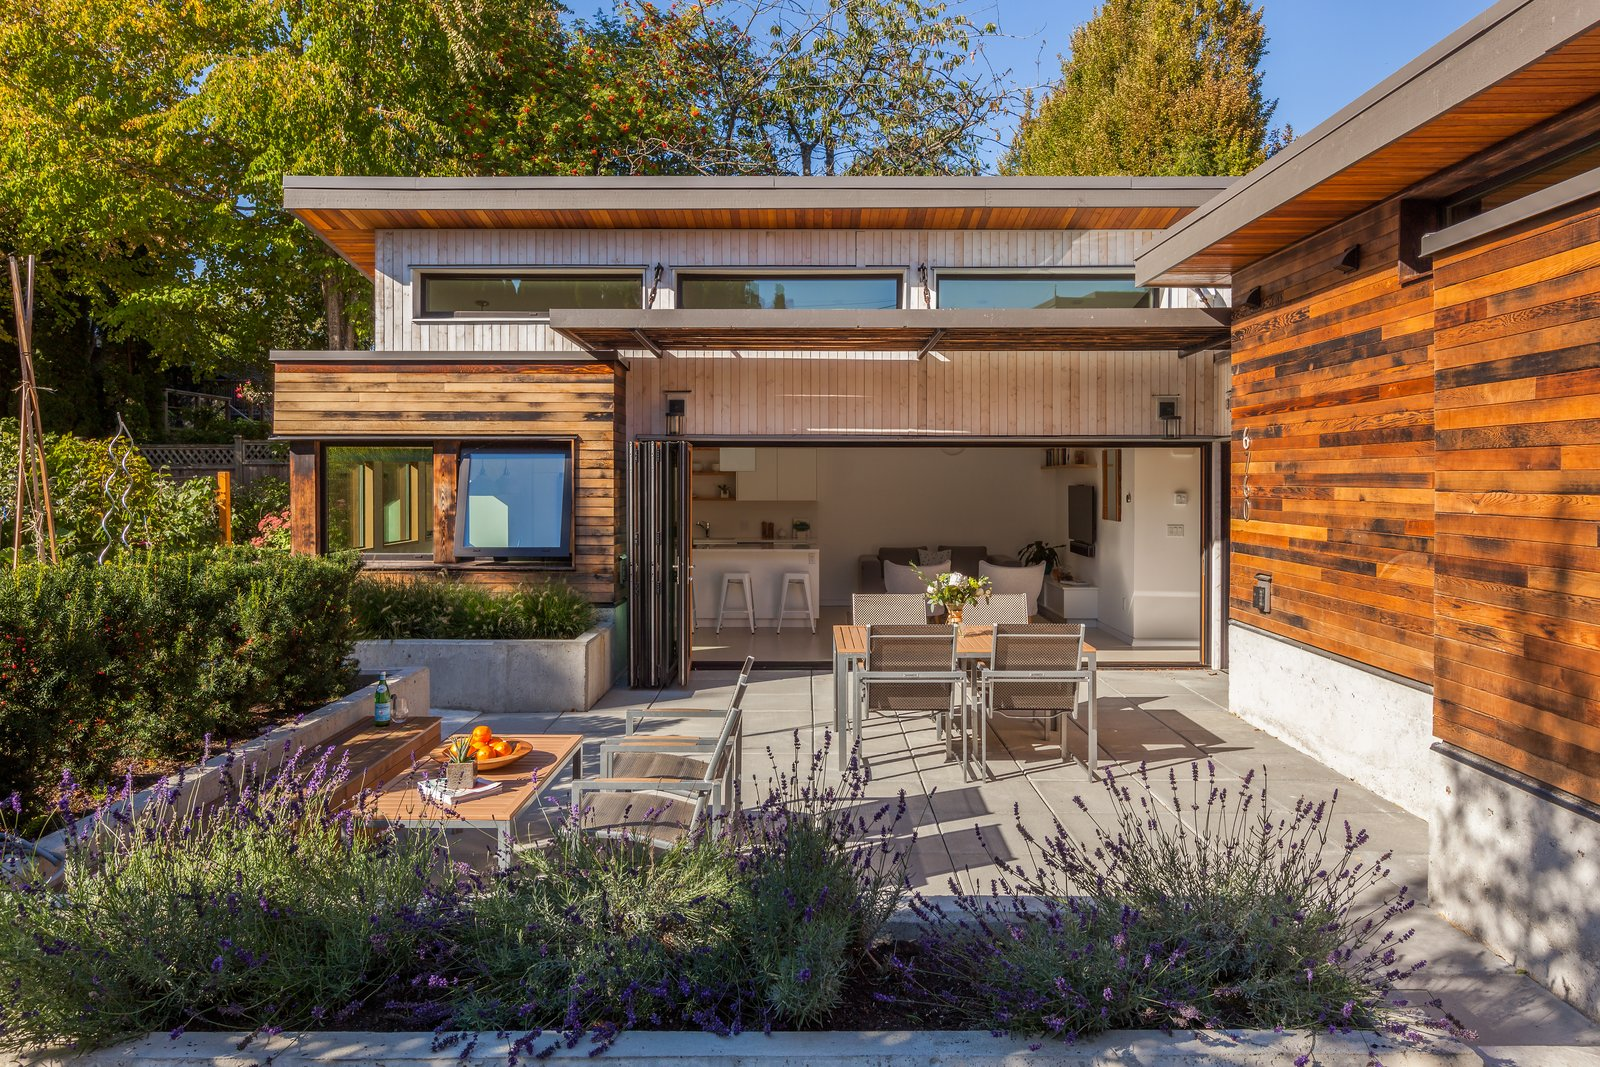 """The lane house sits in the extensive gardens behind the primary residence. Sinking the ground floor 18"""" below grade allows for loftier ceilings while giving the patio a sense of enclosure. 'Two Birds' Infill House by Lanefab Design/Build"""